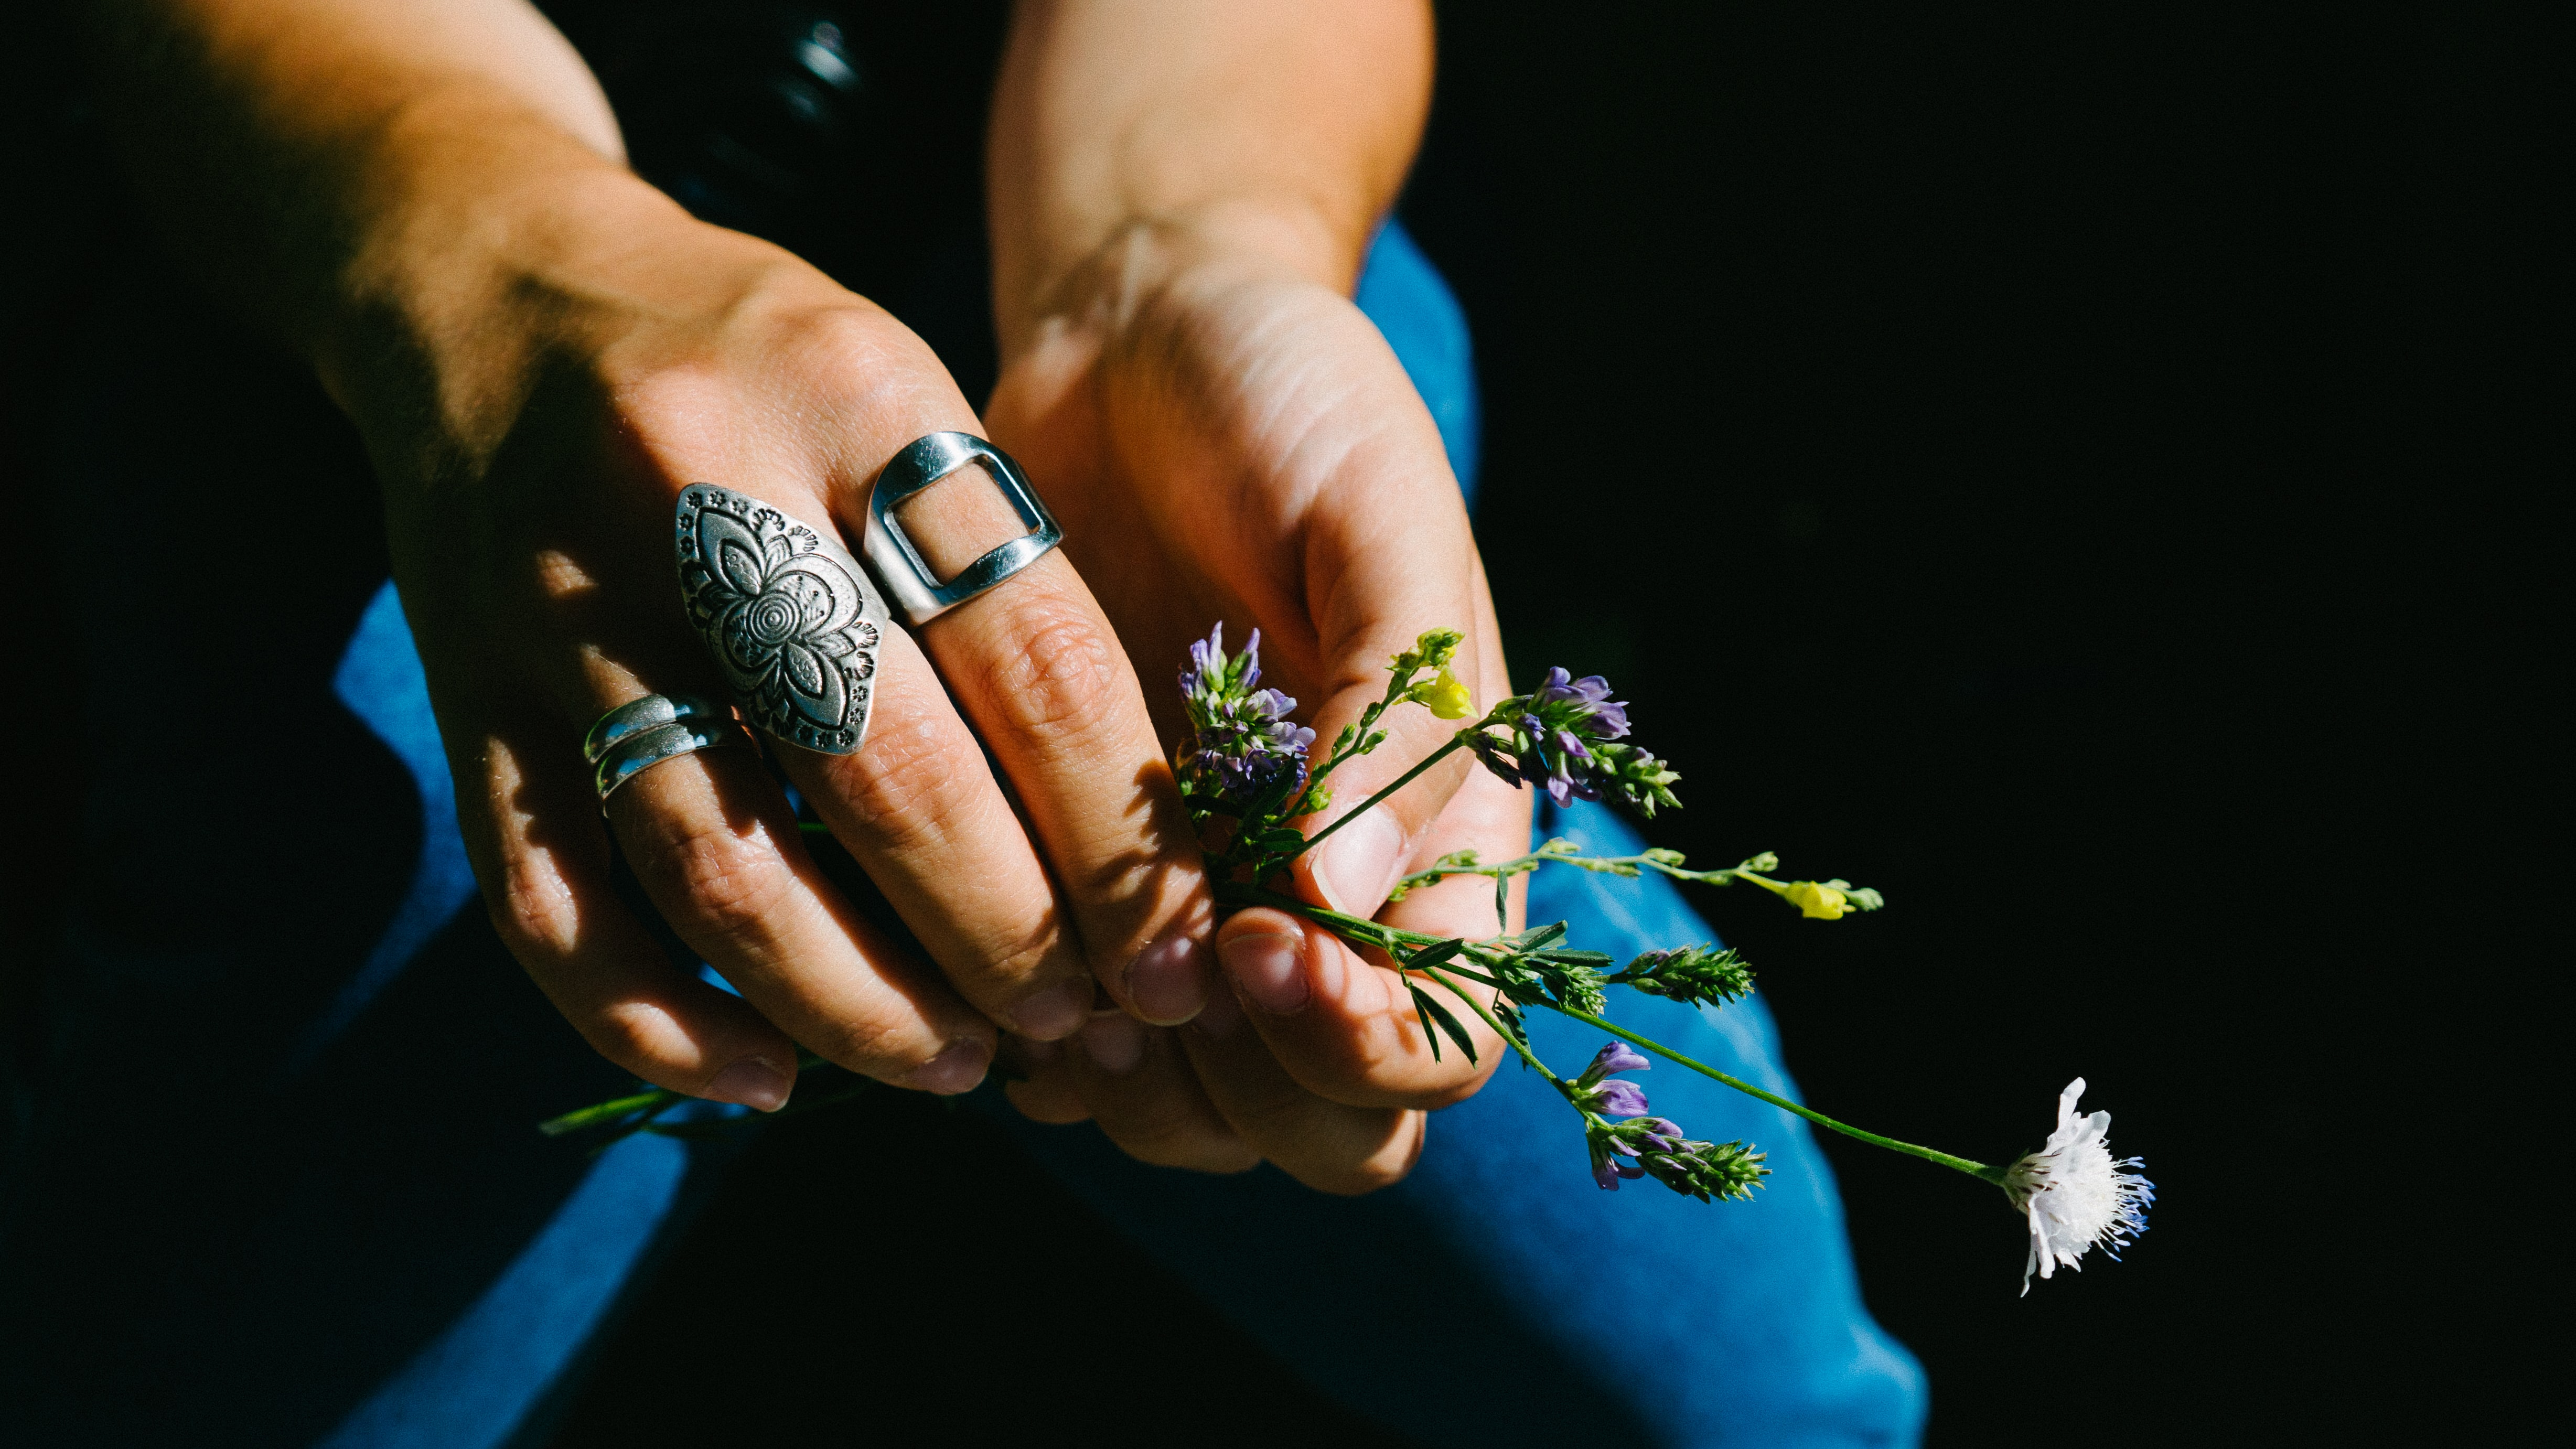 person holding white flowering plant